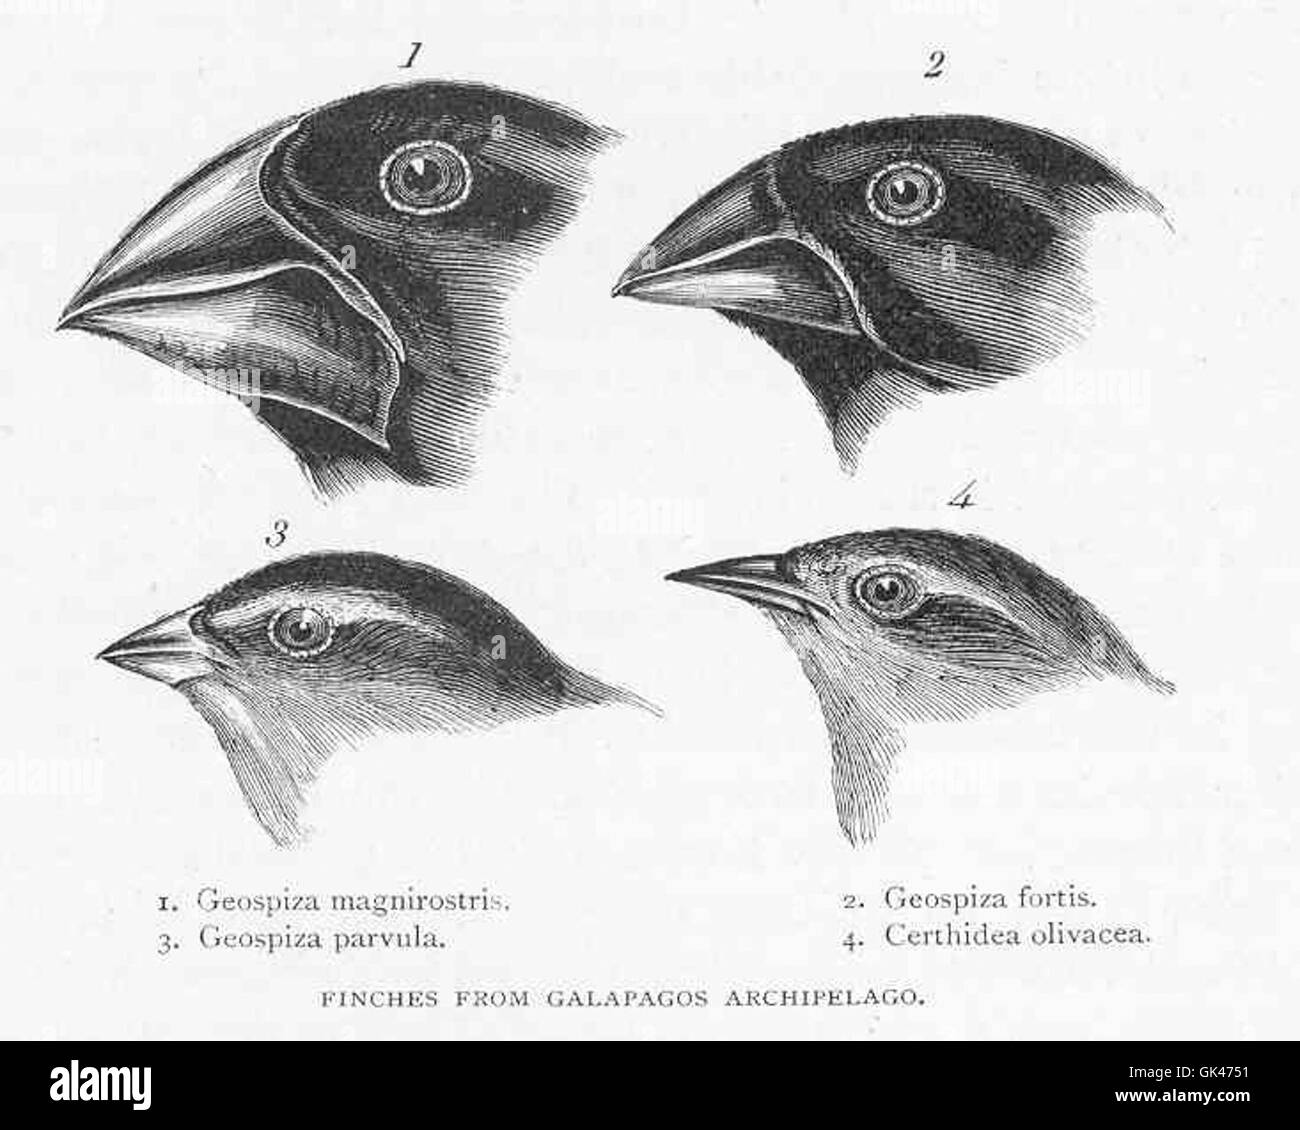 47321 Finches from Galapagos Archipelago - Stock Image